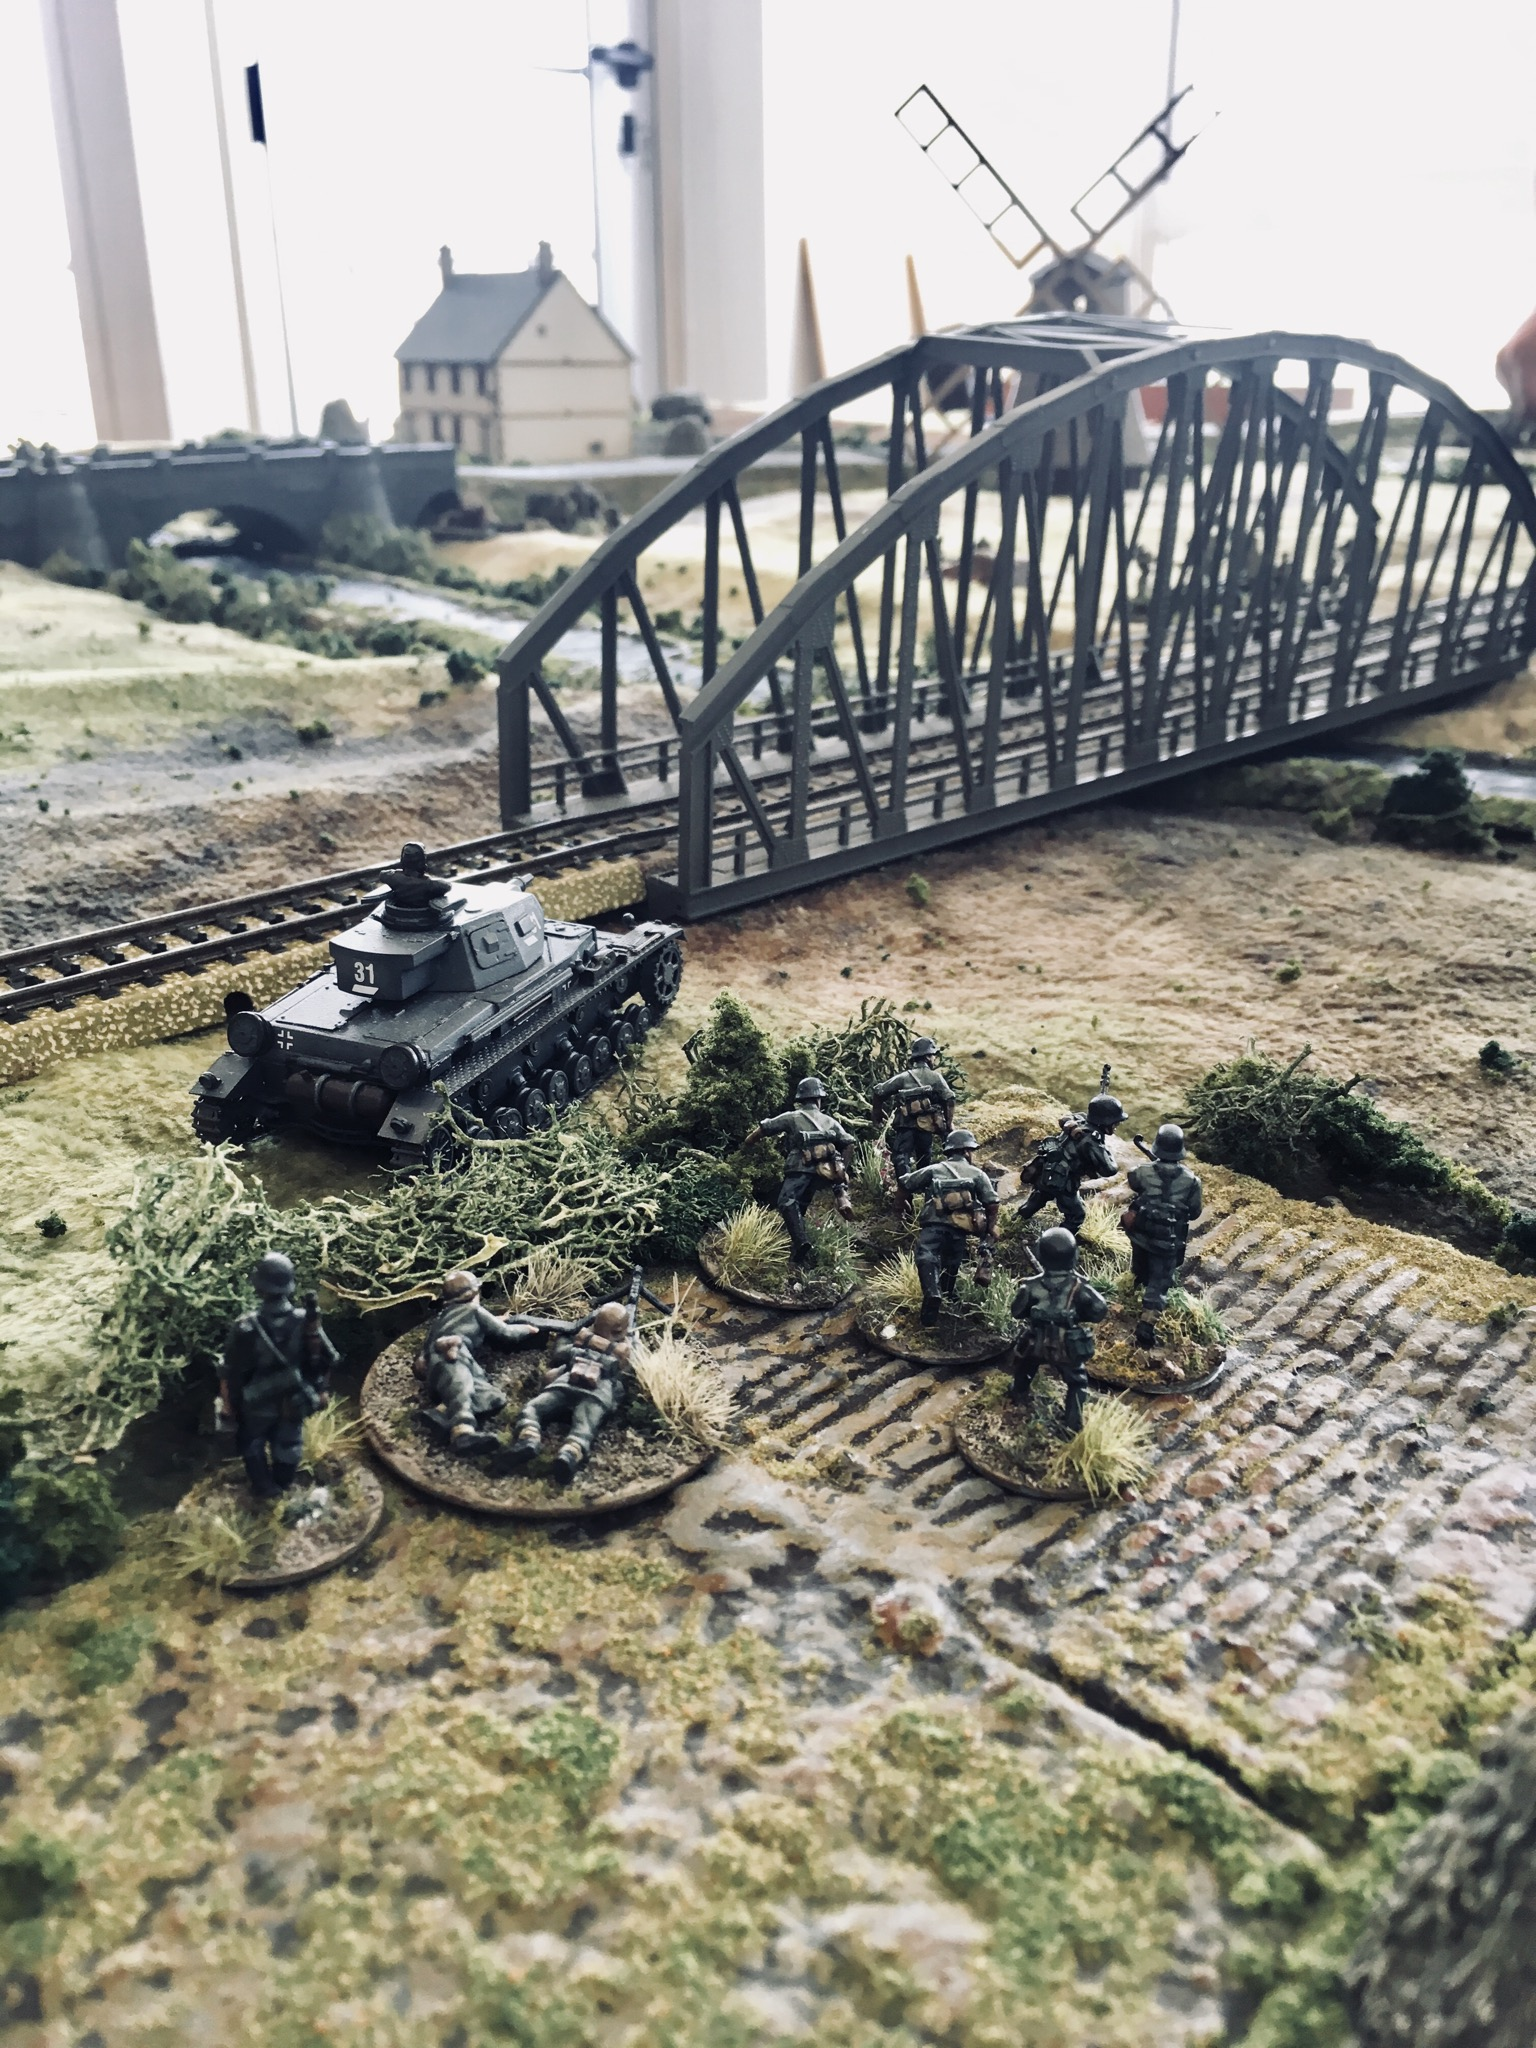 One more River to.....Blitzkrieg AAR EE03F0AD-E4E0-484A-B465-40DB8576699F